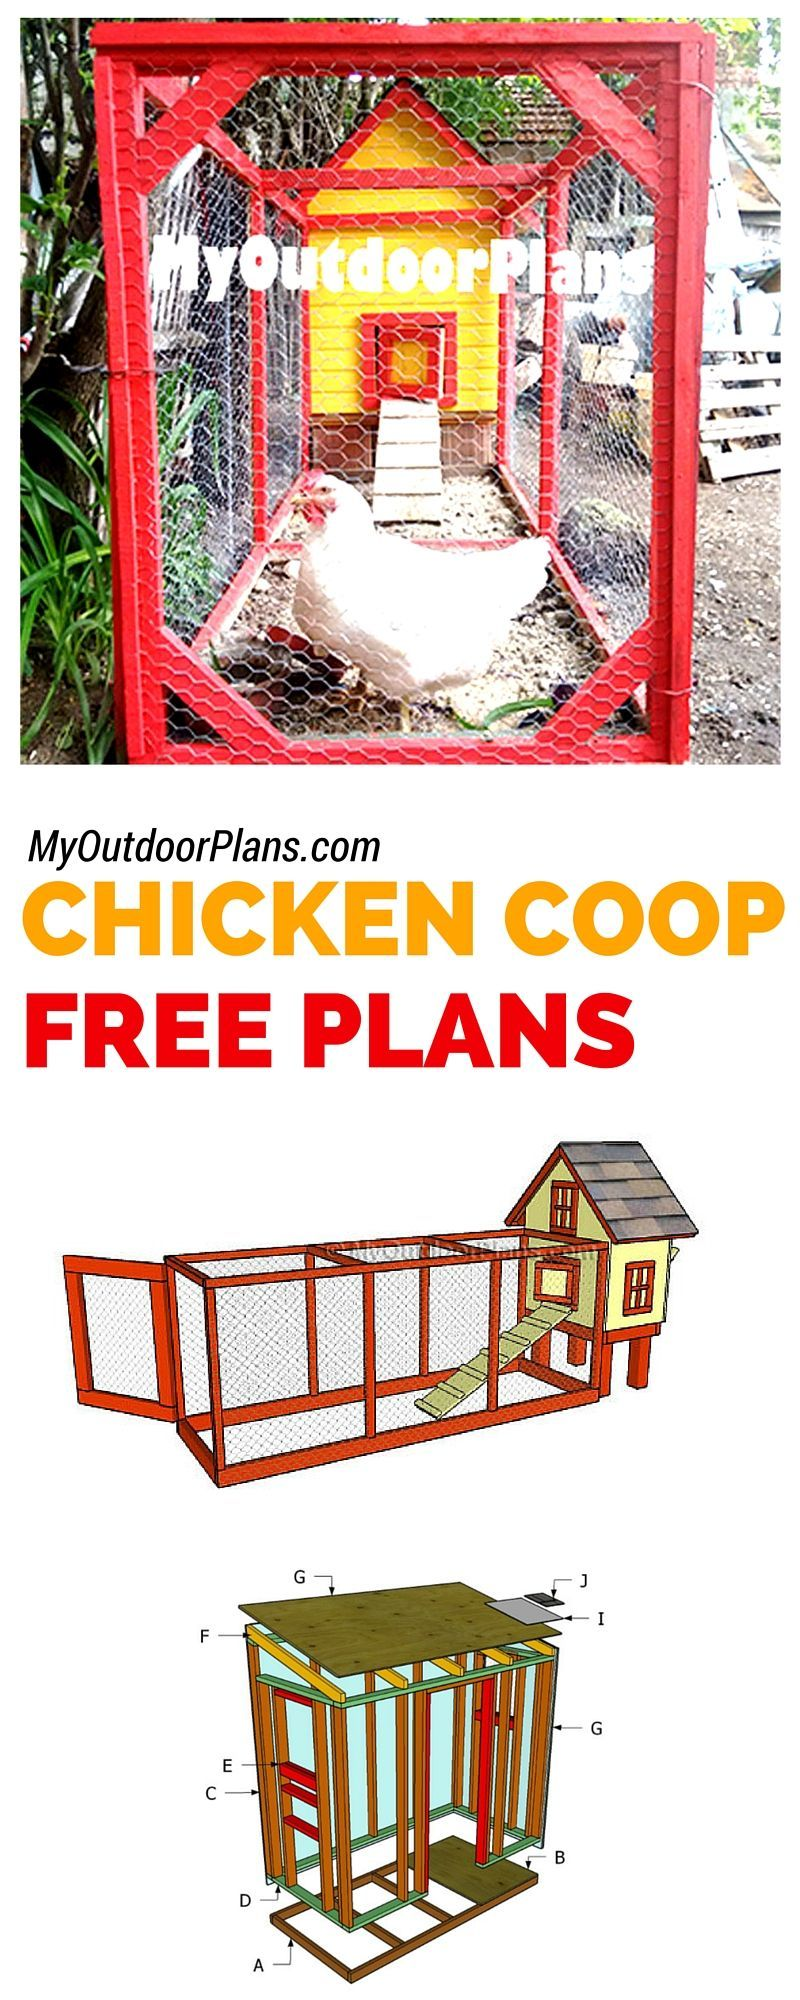 22 Low Budget Diy Backyard Chicken Coop Plans: Easy To Follow Instructions, Guides And Instructions For You To Build A